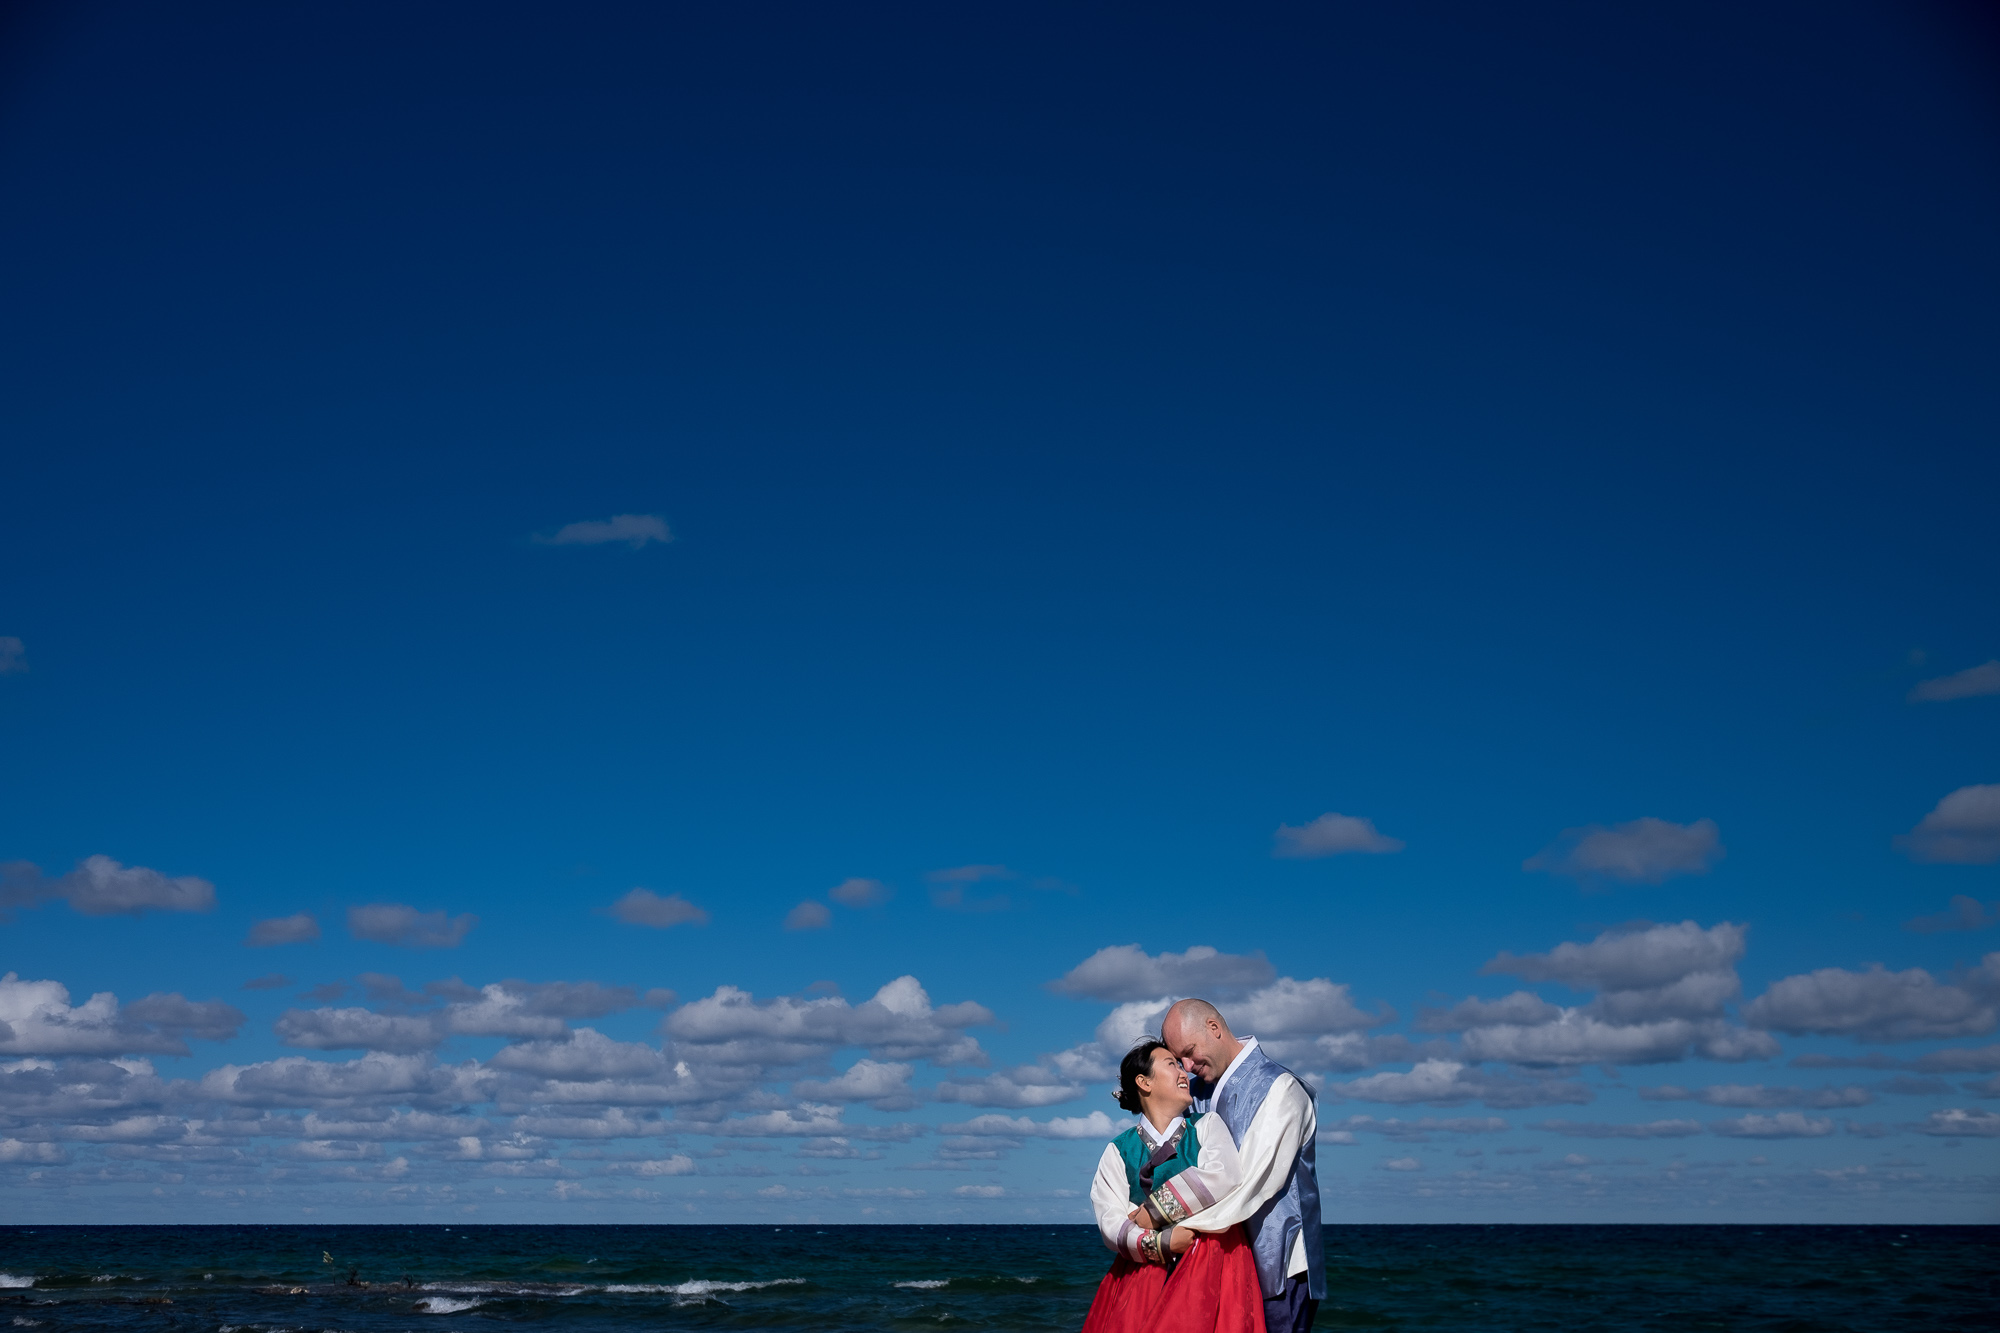 A wedding portrait of Joohee + Joel wearing their traditional Korean wedding attire on the waterfront in Tobermory.